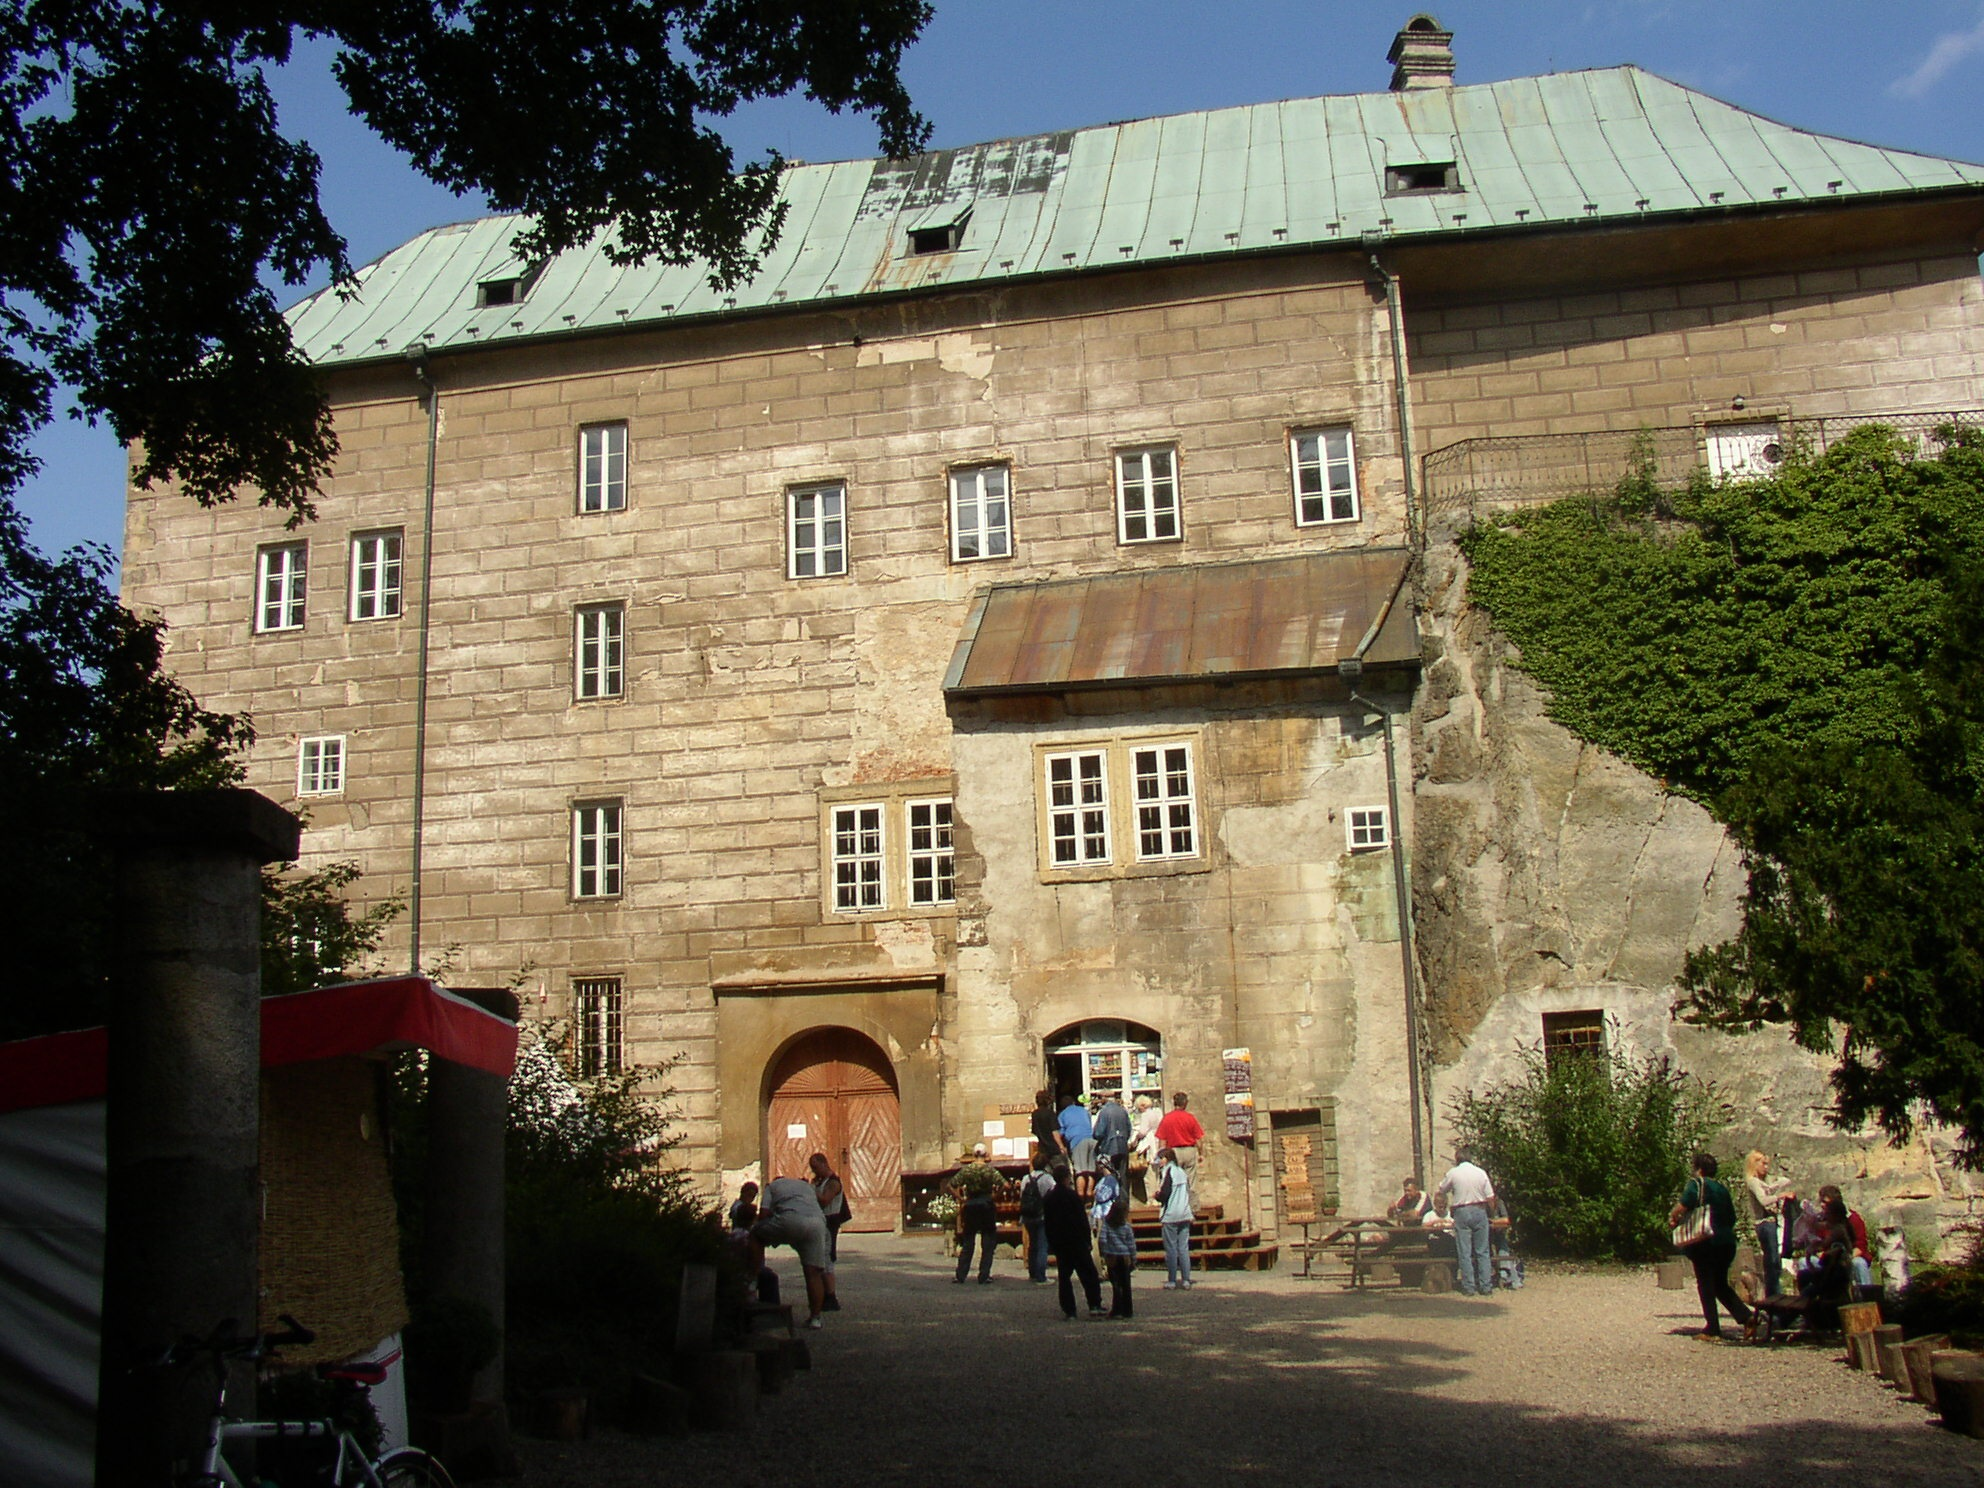 Copy of Front gate entrance to Houska Castle